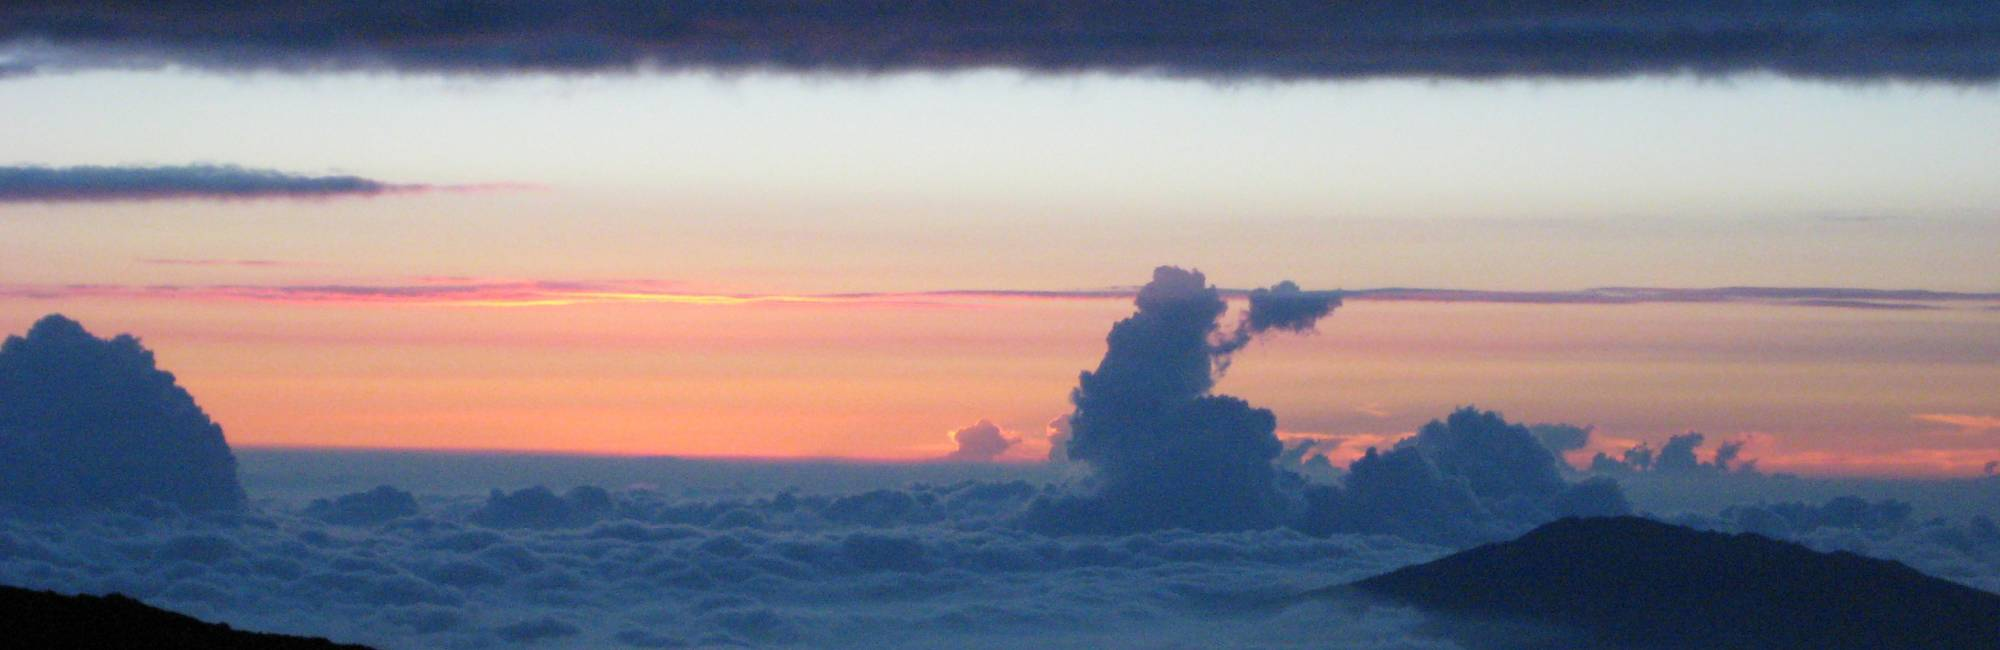 view of sky and clouds from NOAA's Mauna Loa Atmospheric Baseline Observatory, which sits at 11,140 feet, on top of Hawaii's tallest volcano.